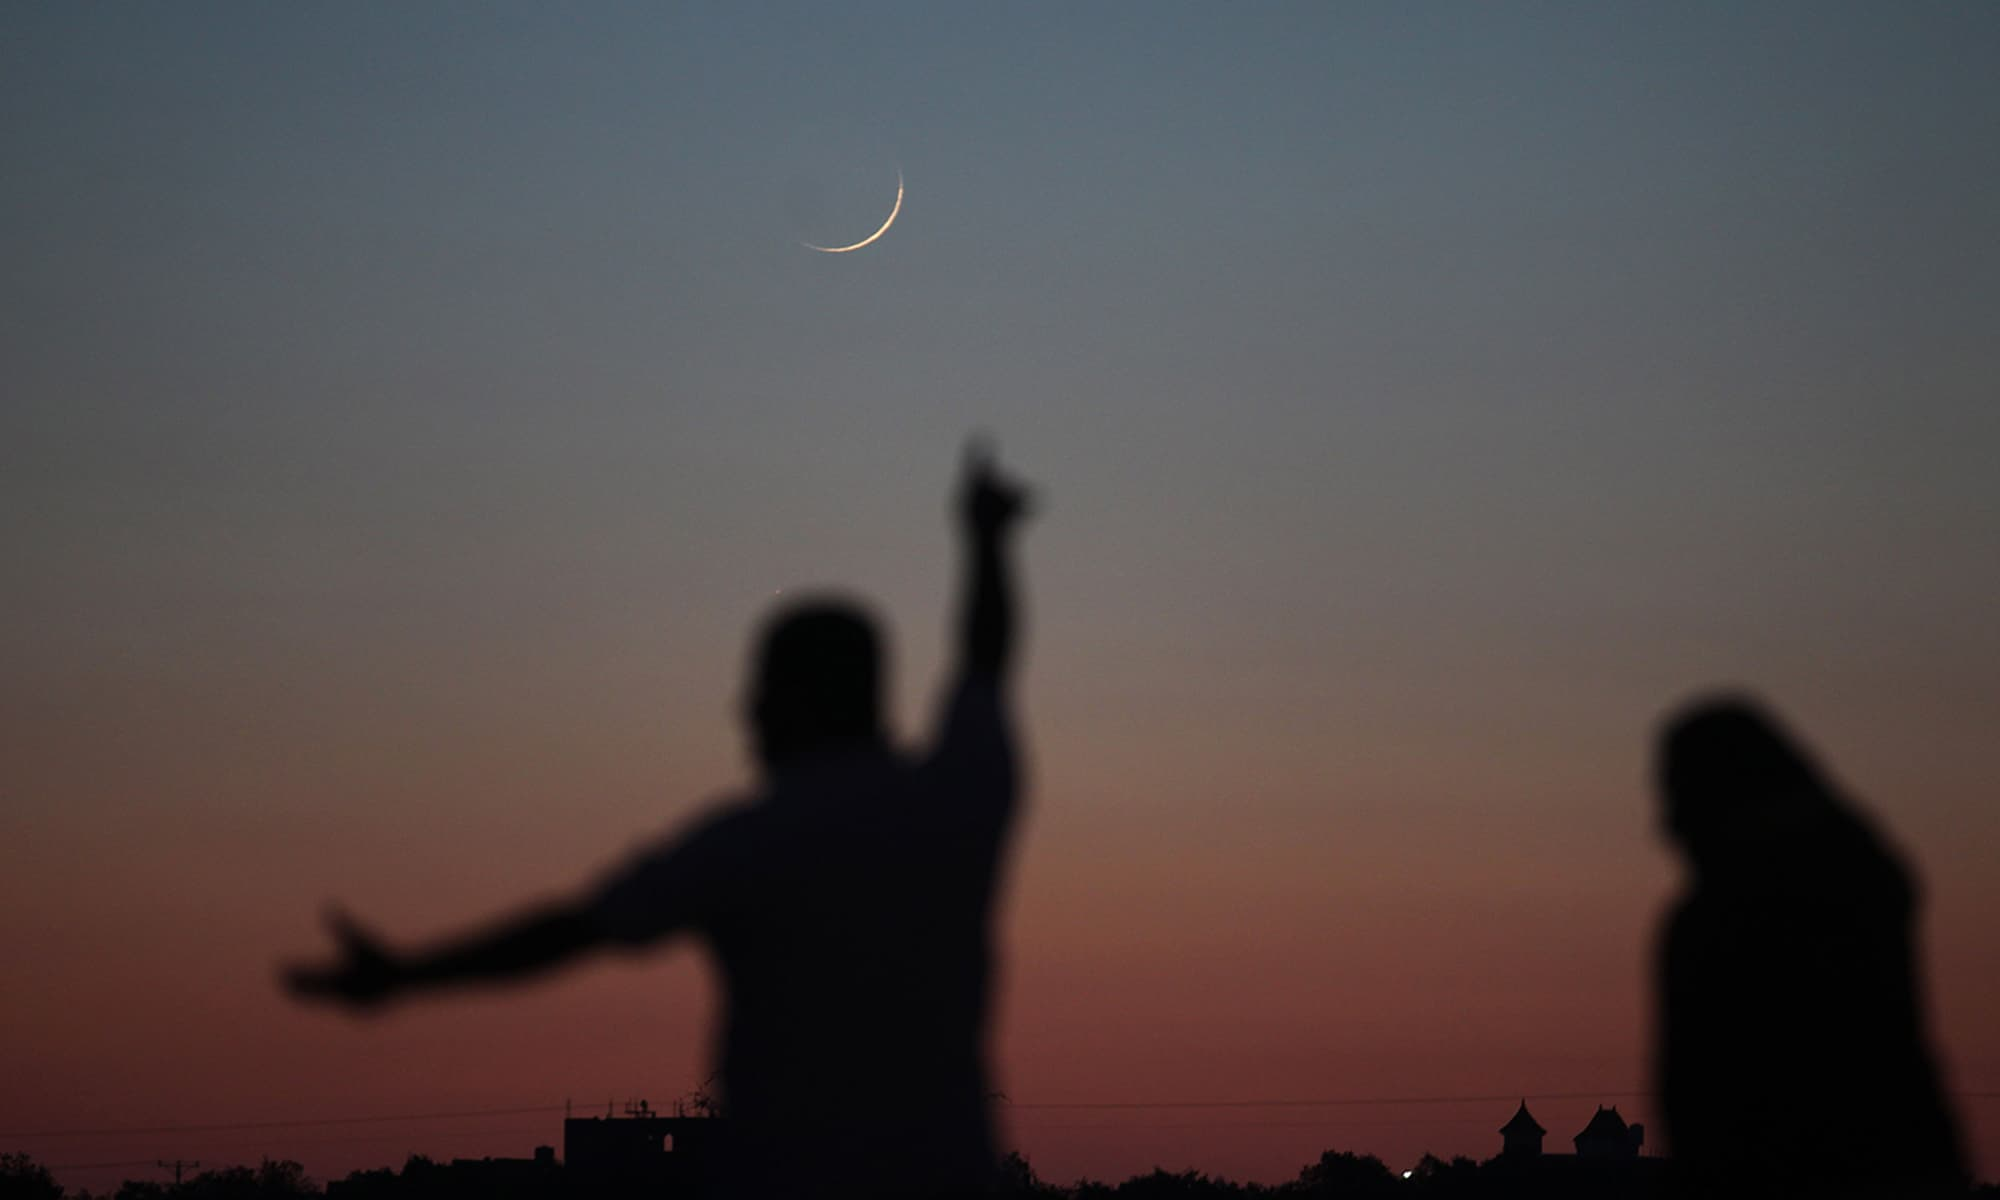 A Palestinian man points towards the moon in its Crescent form in Khan Yunis in the southern Gaza Strip. — AFP